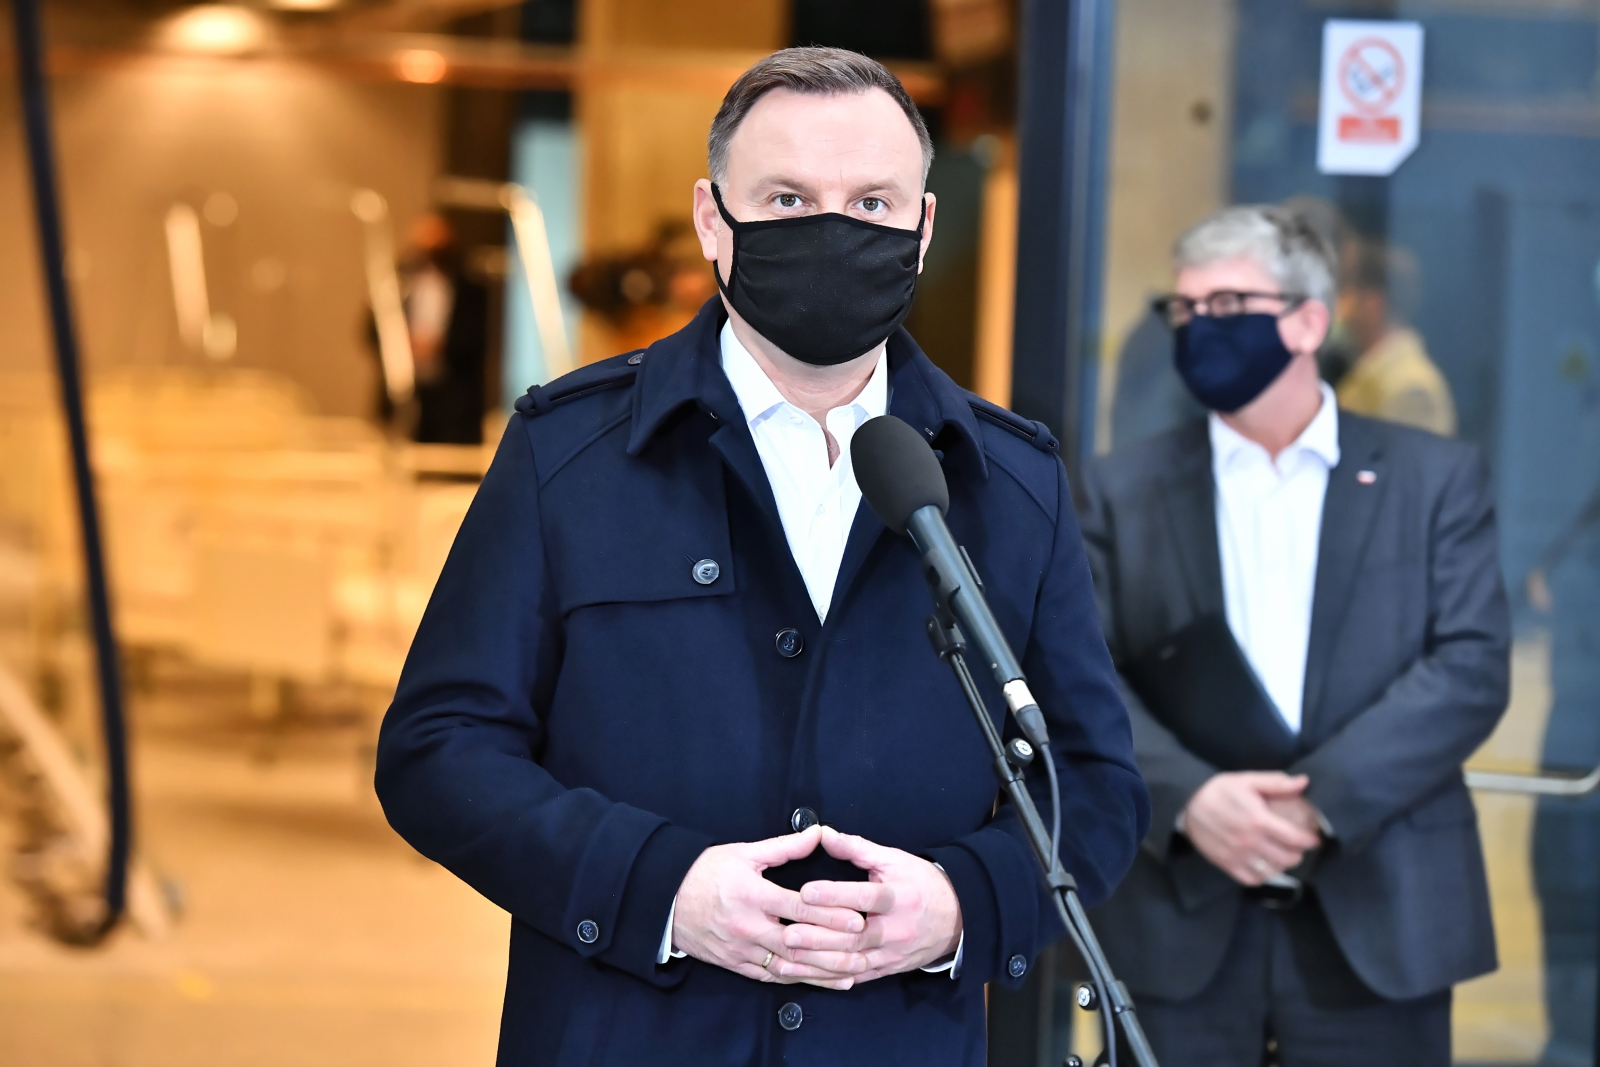 President Andrzej Duda speaking during an inspection visit at the National Stadium on Friday. The site is being transformed into a field  hospital for coronavirus patients.